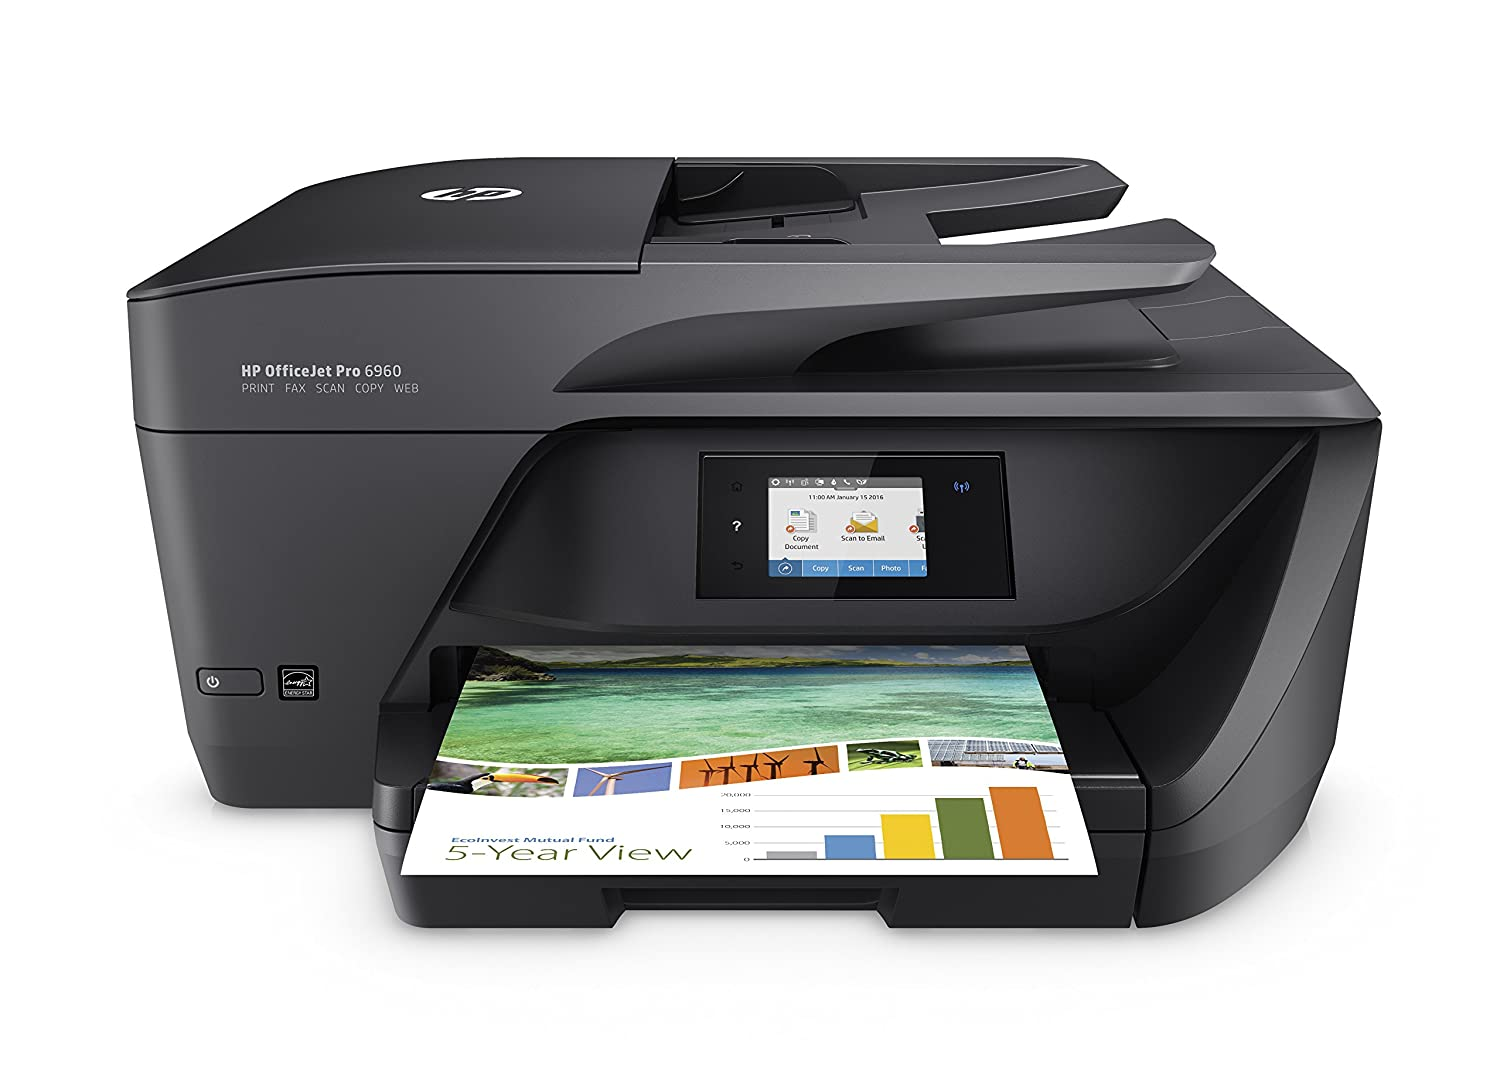 HP OfficeJet Pro Impresora multifunción tinta color WiFi fax copiar escanear impresión